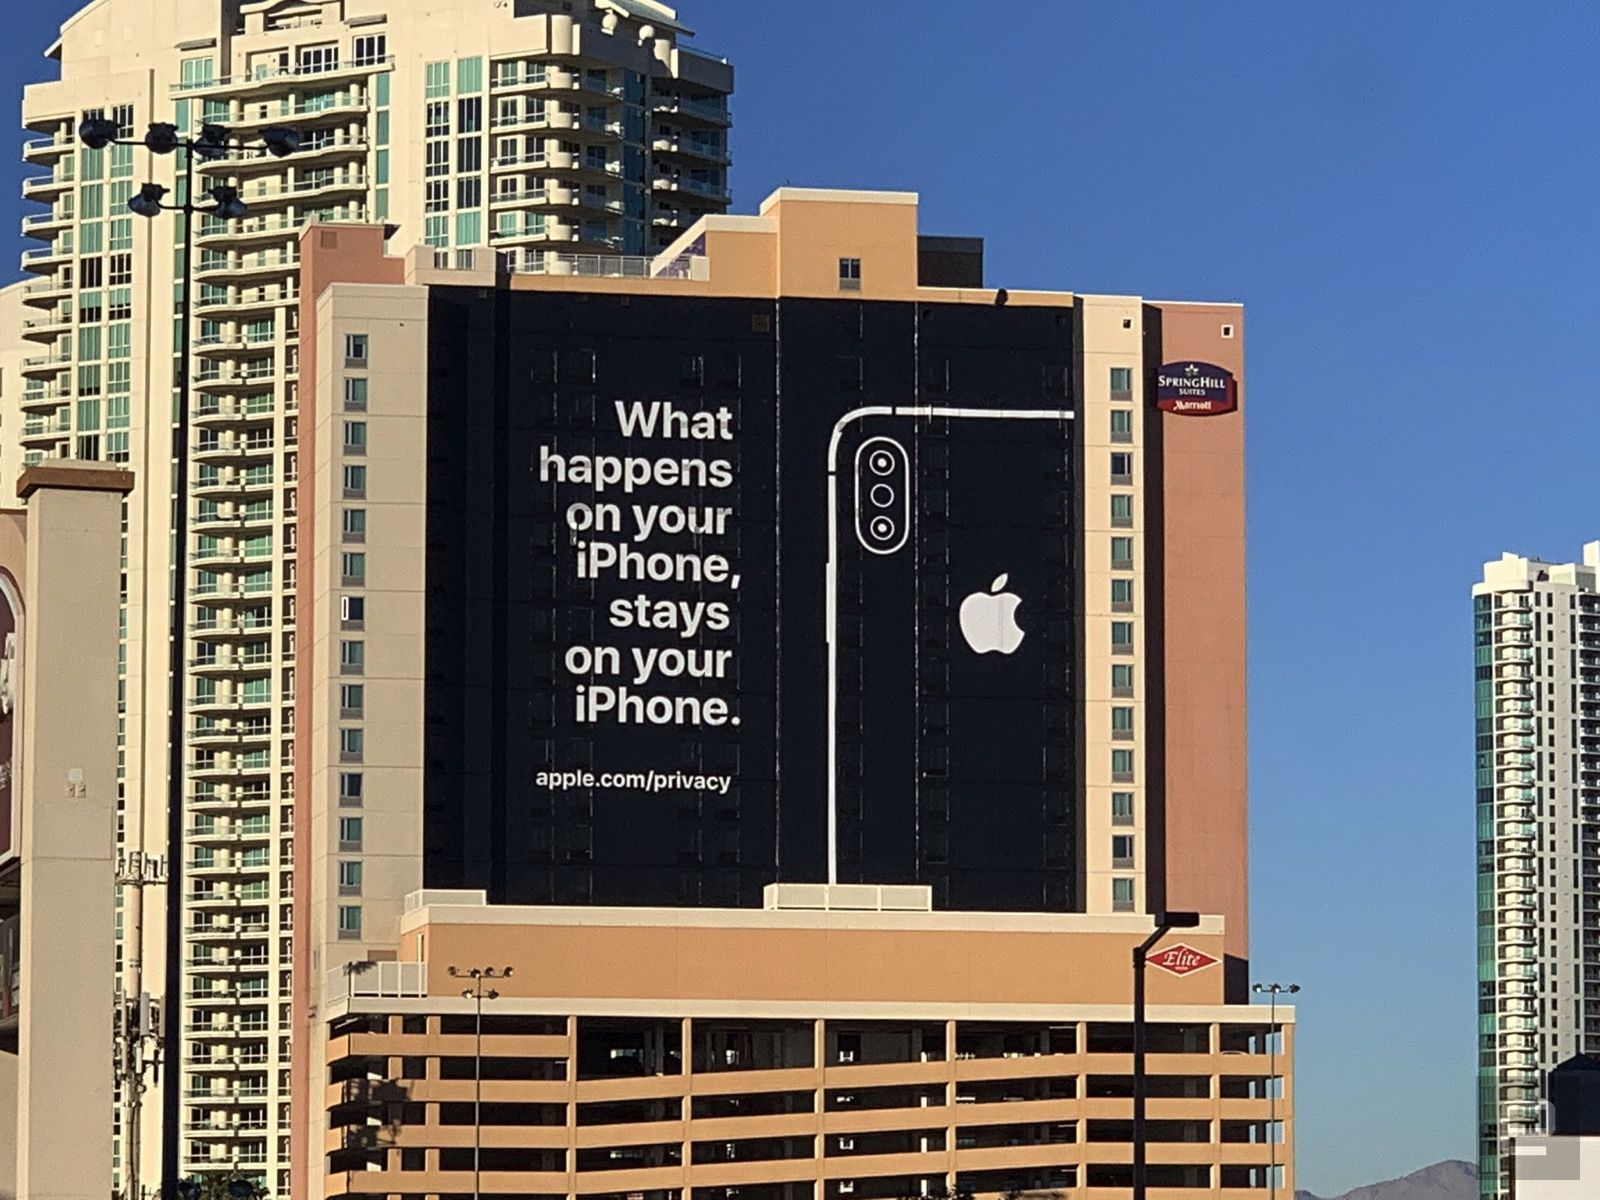 Apple ad on side of building during CES 2019. Reads: 'What happens on your iPhone, stays on your iPhone.'